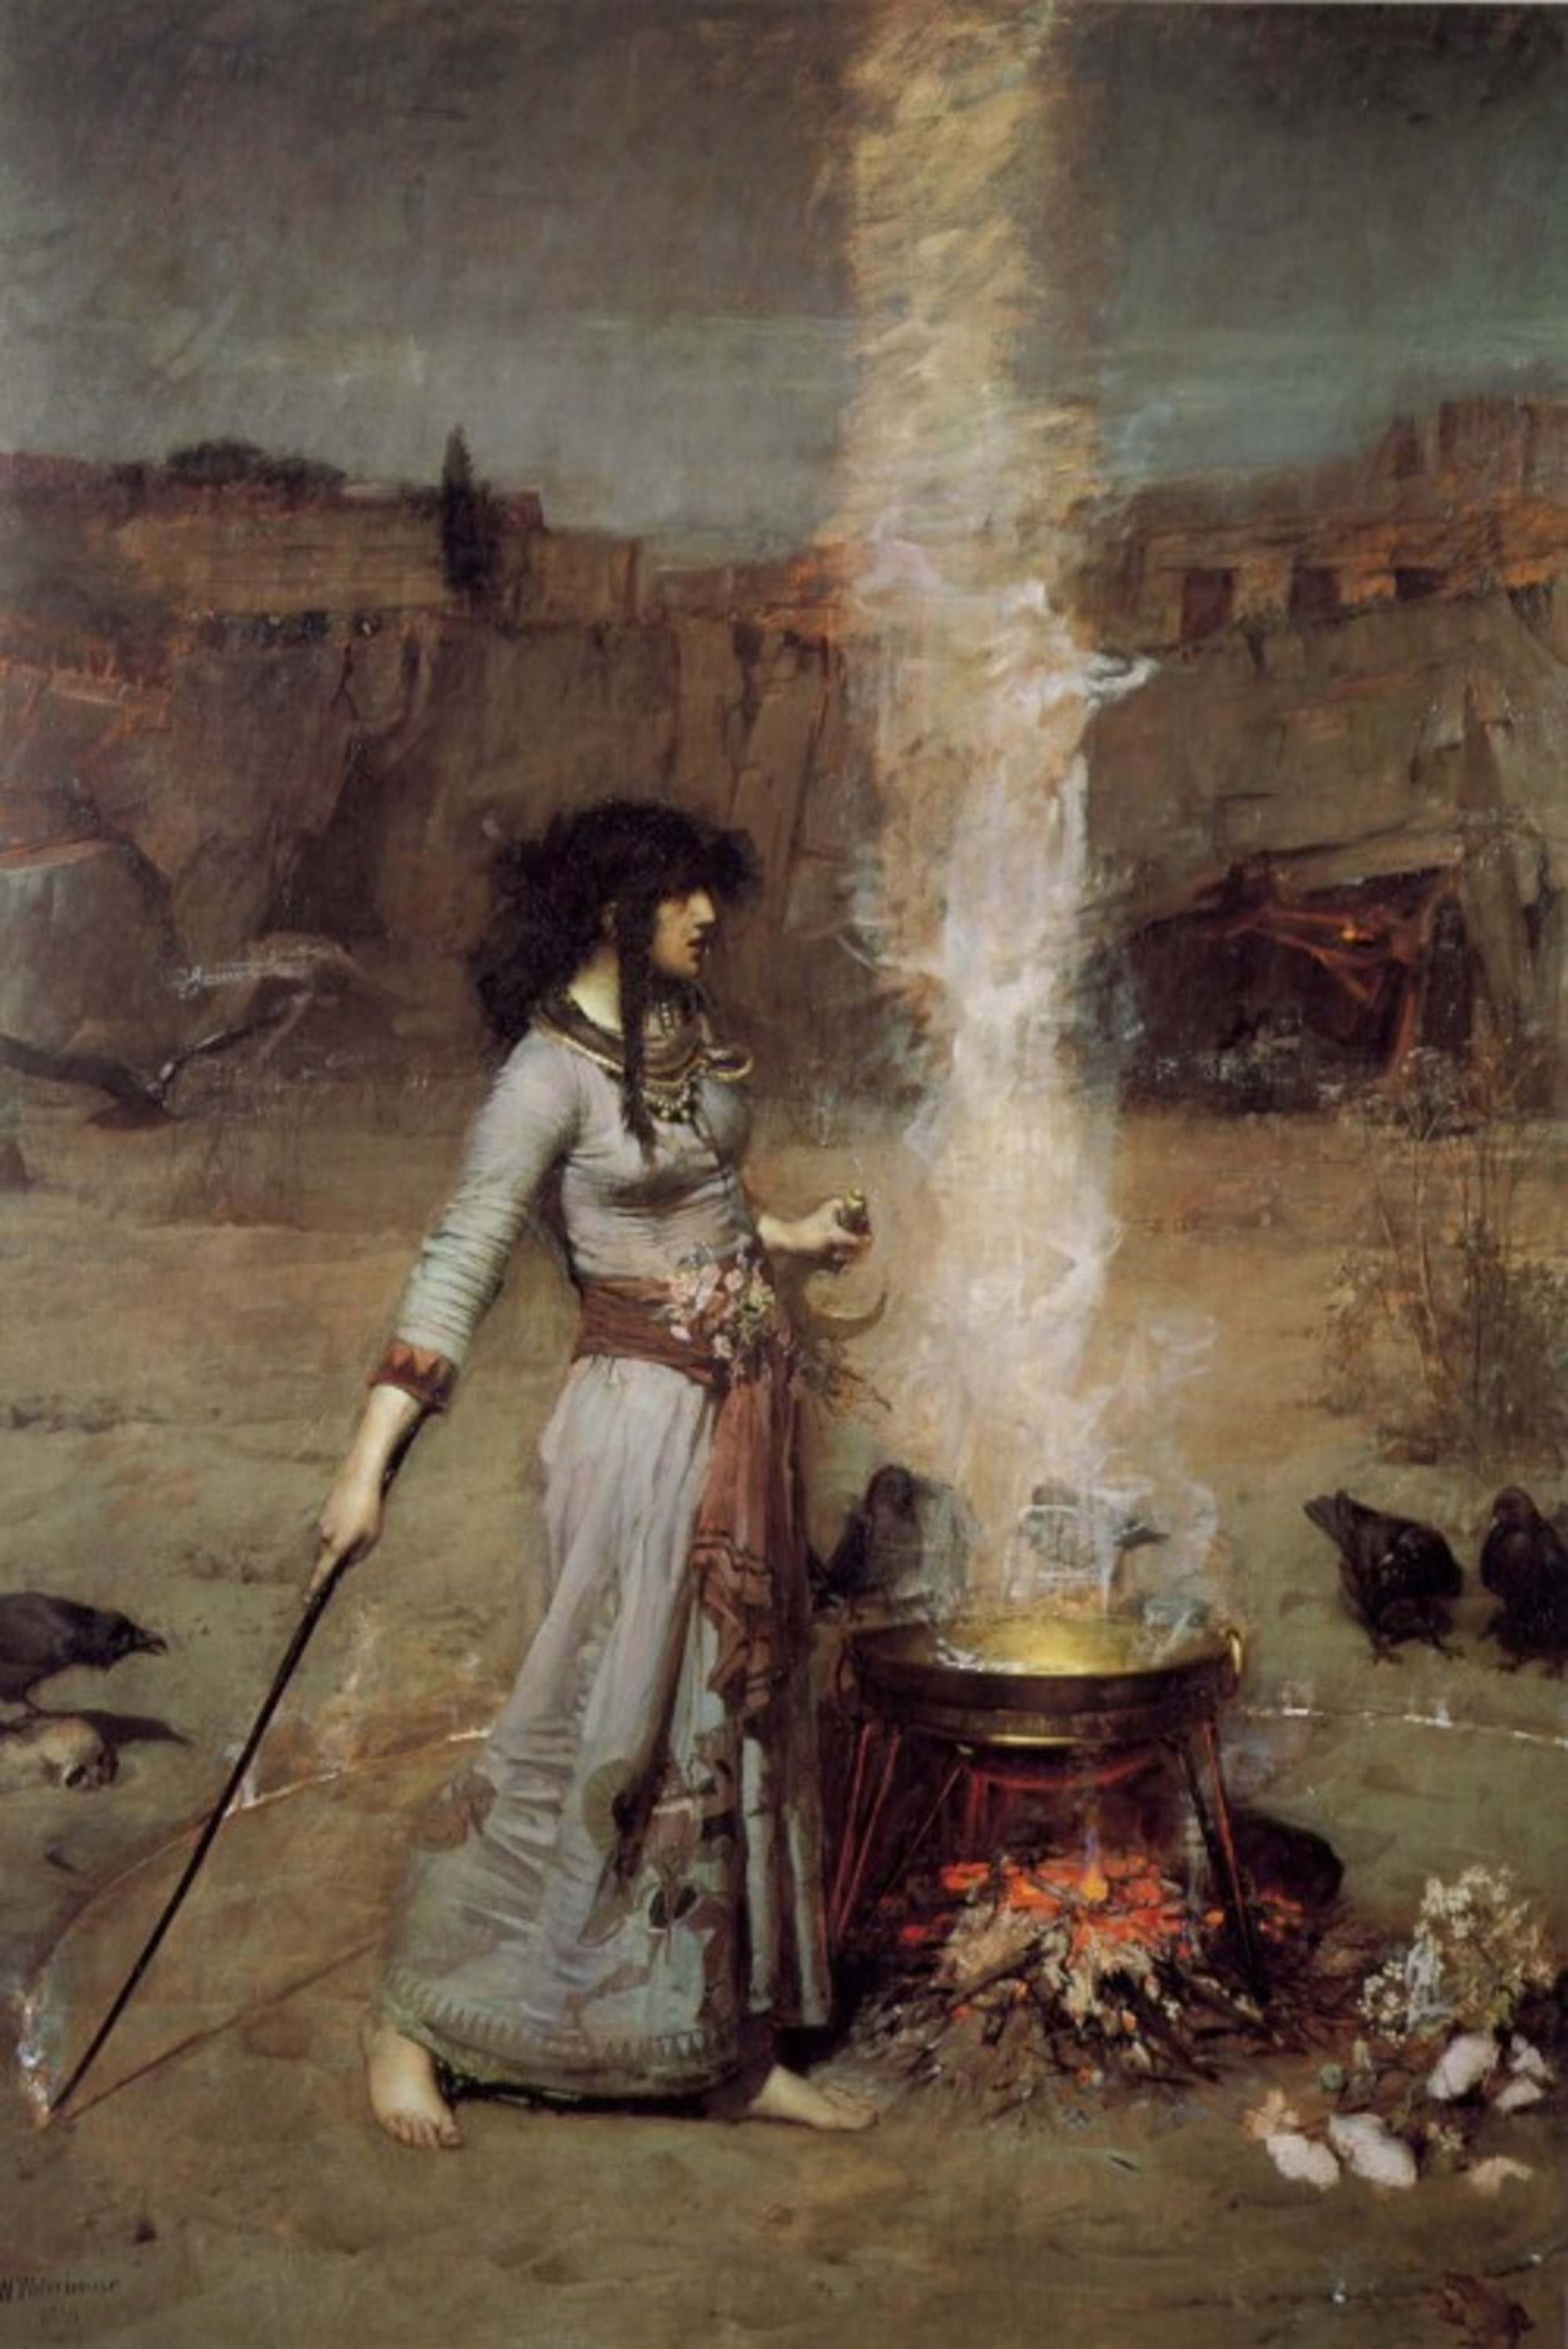 John_William_Waterhouse_-_Magic_Circle.jpg